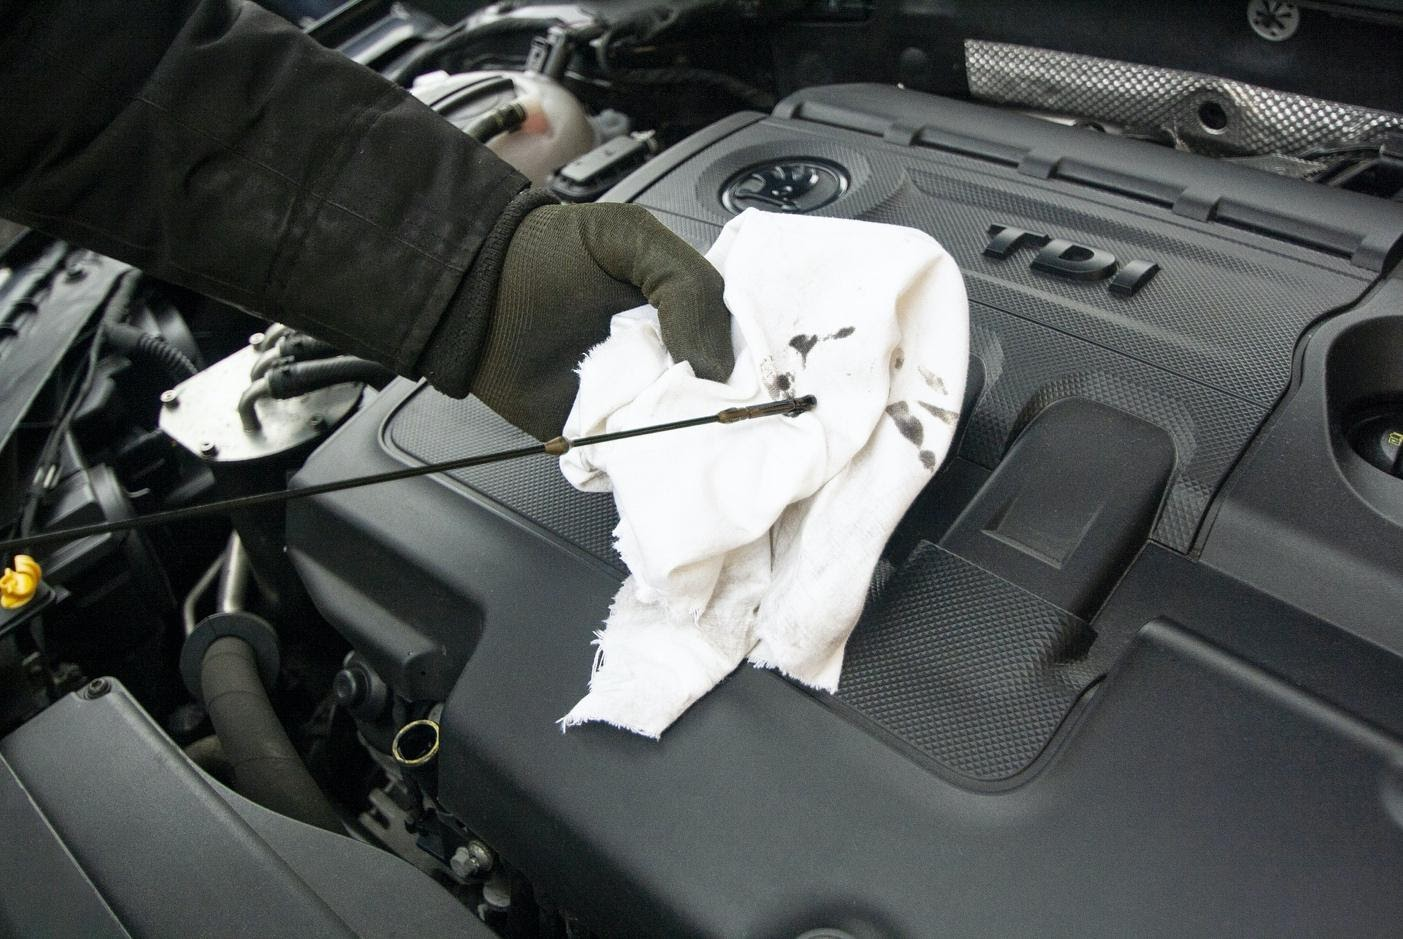 Important car fluids and how to maintain them